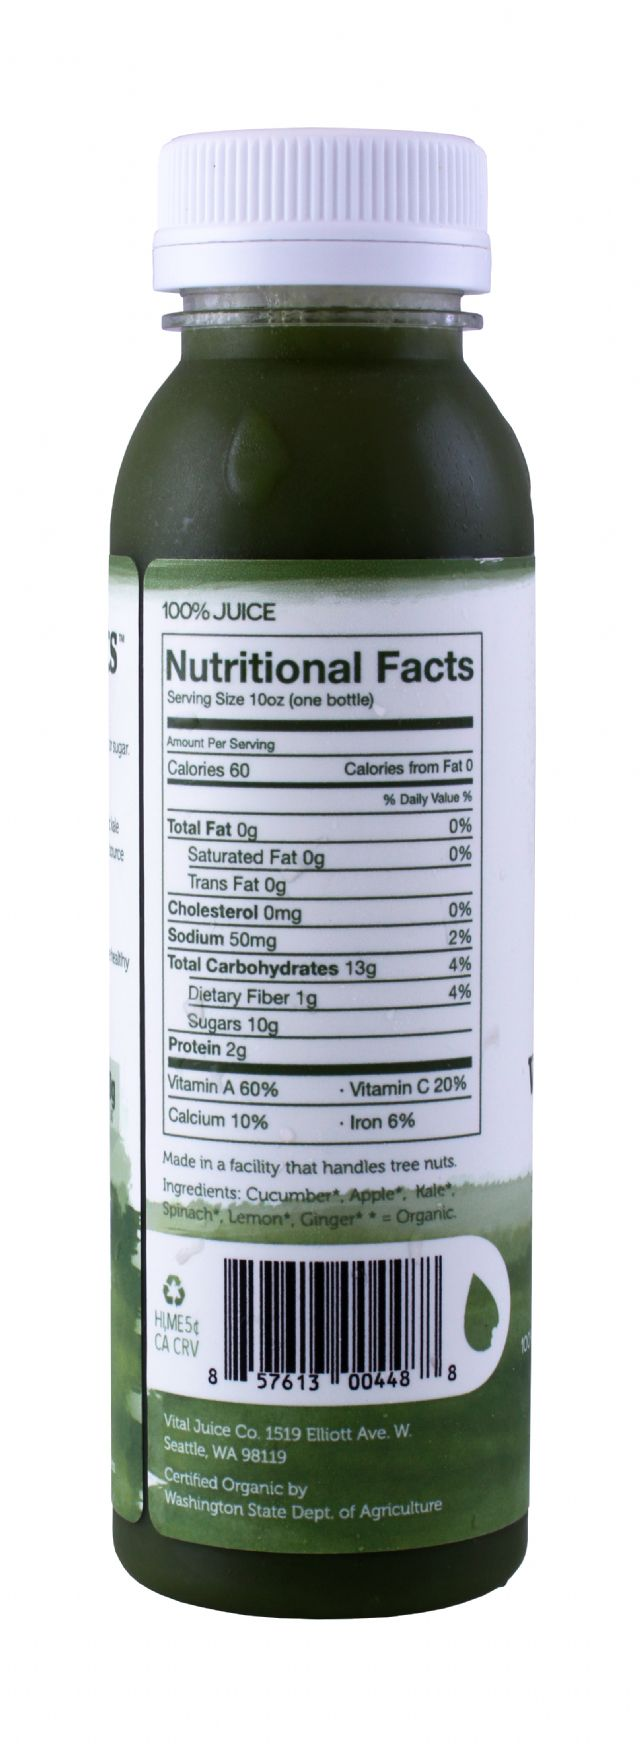 Vital Juice: Vital Greens Facts